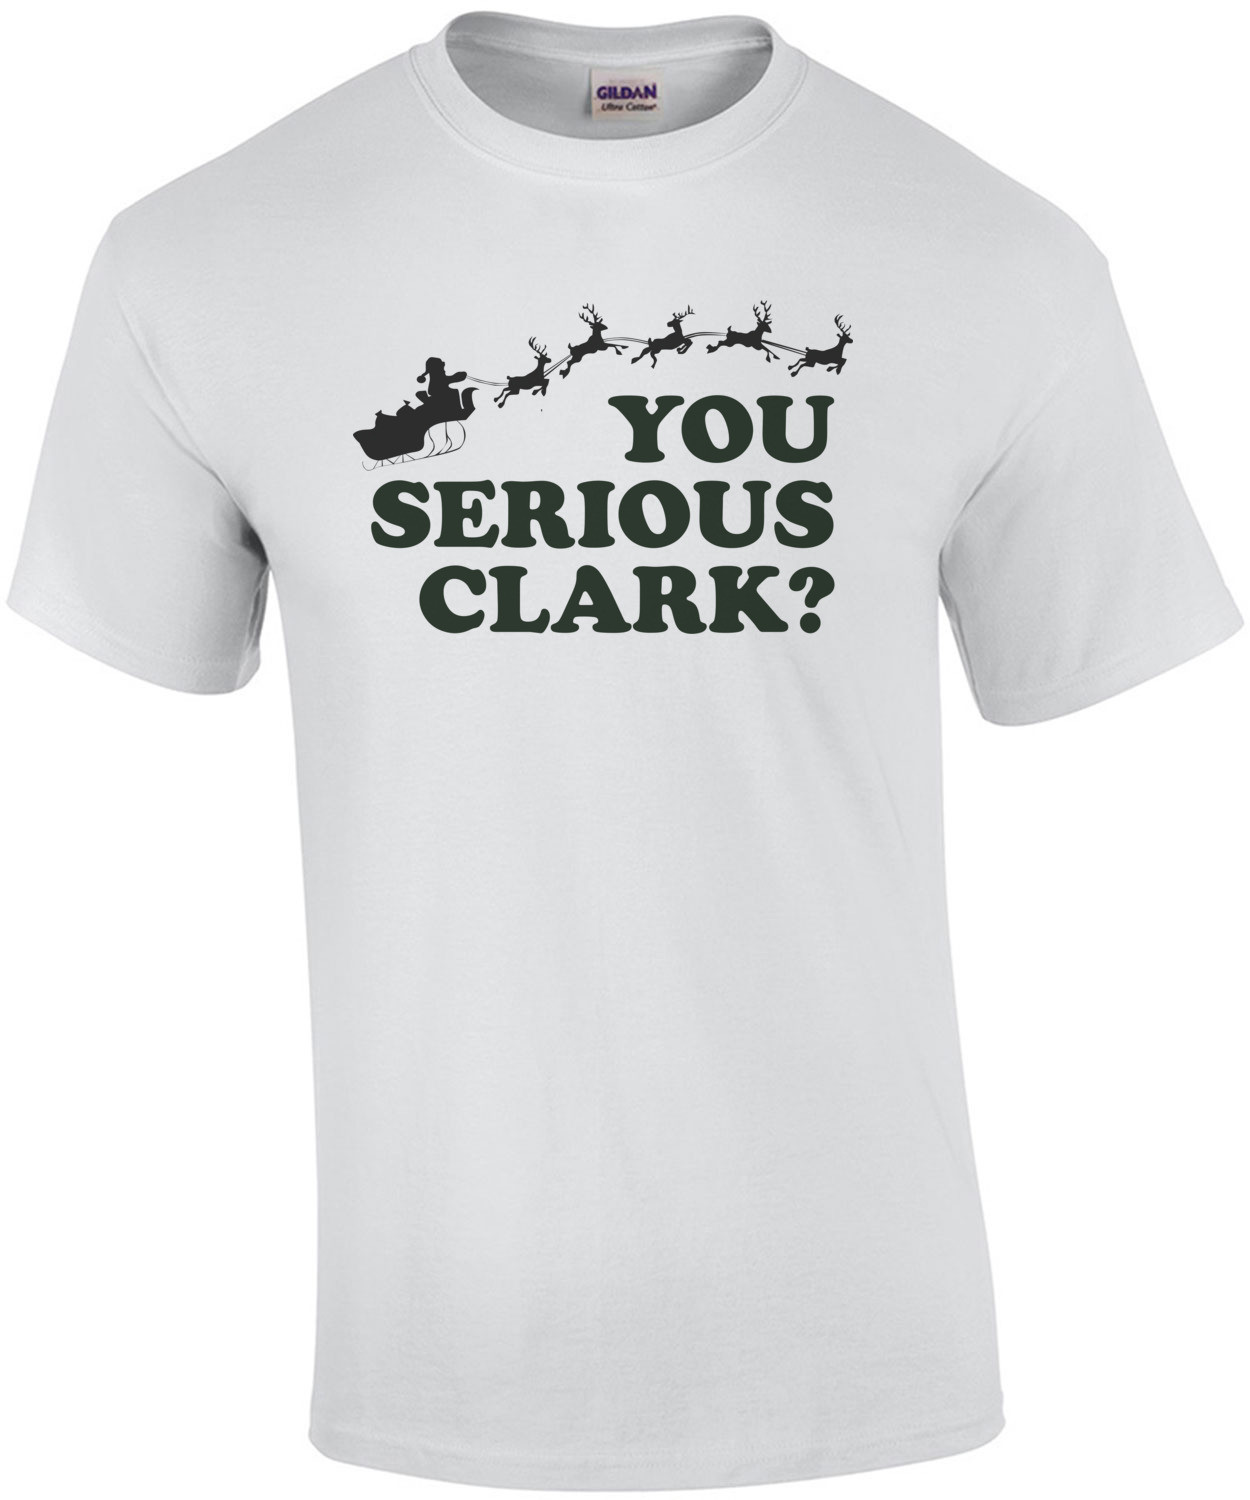 You Serious Clark - Kids Shirt